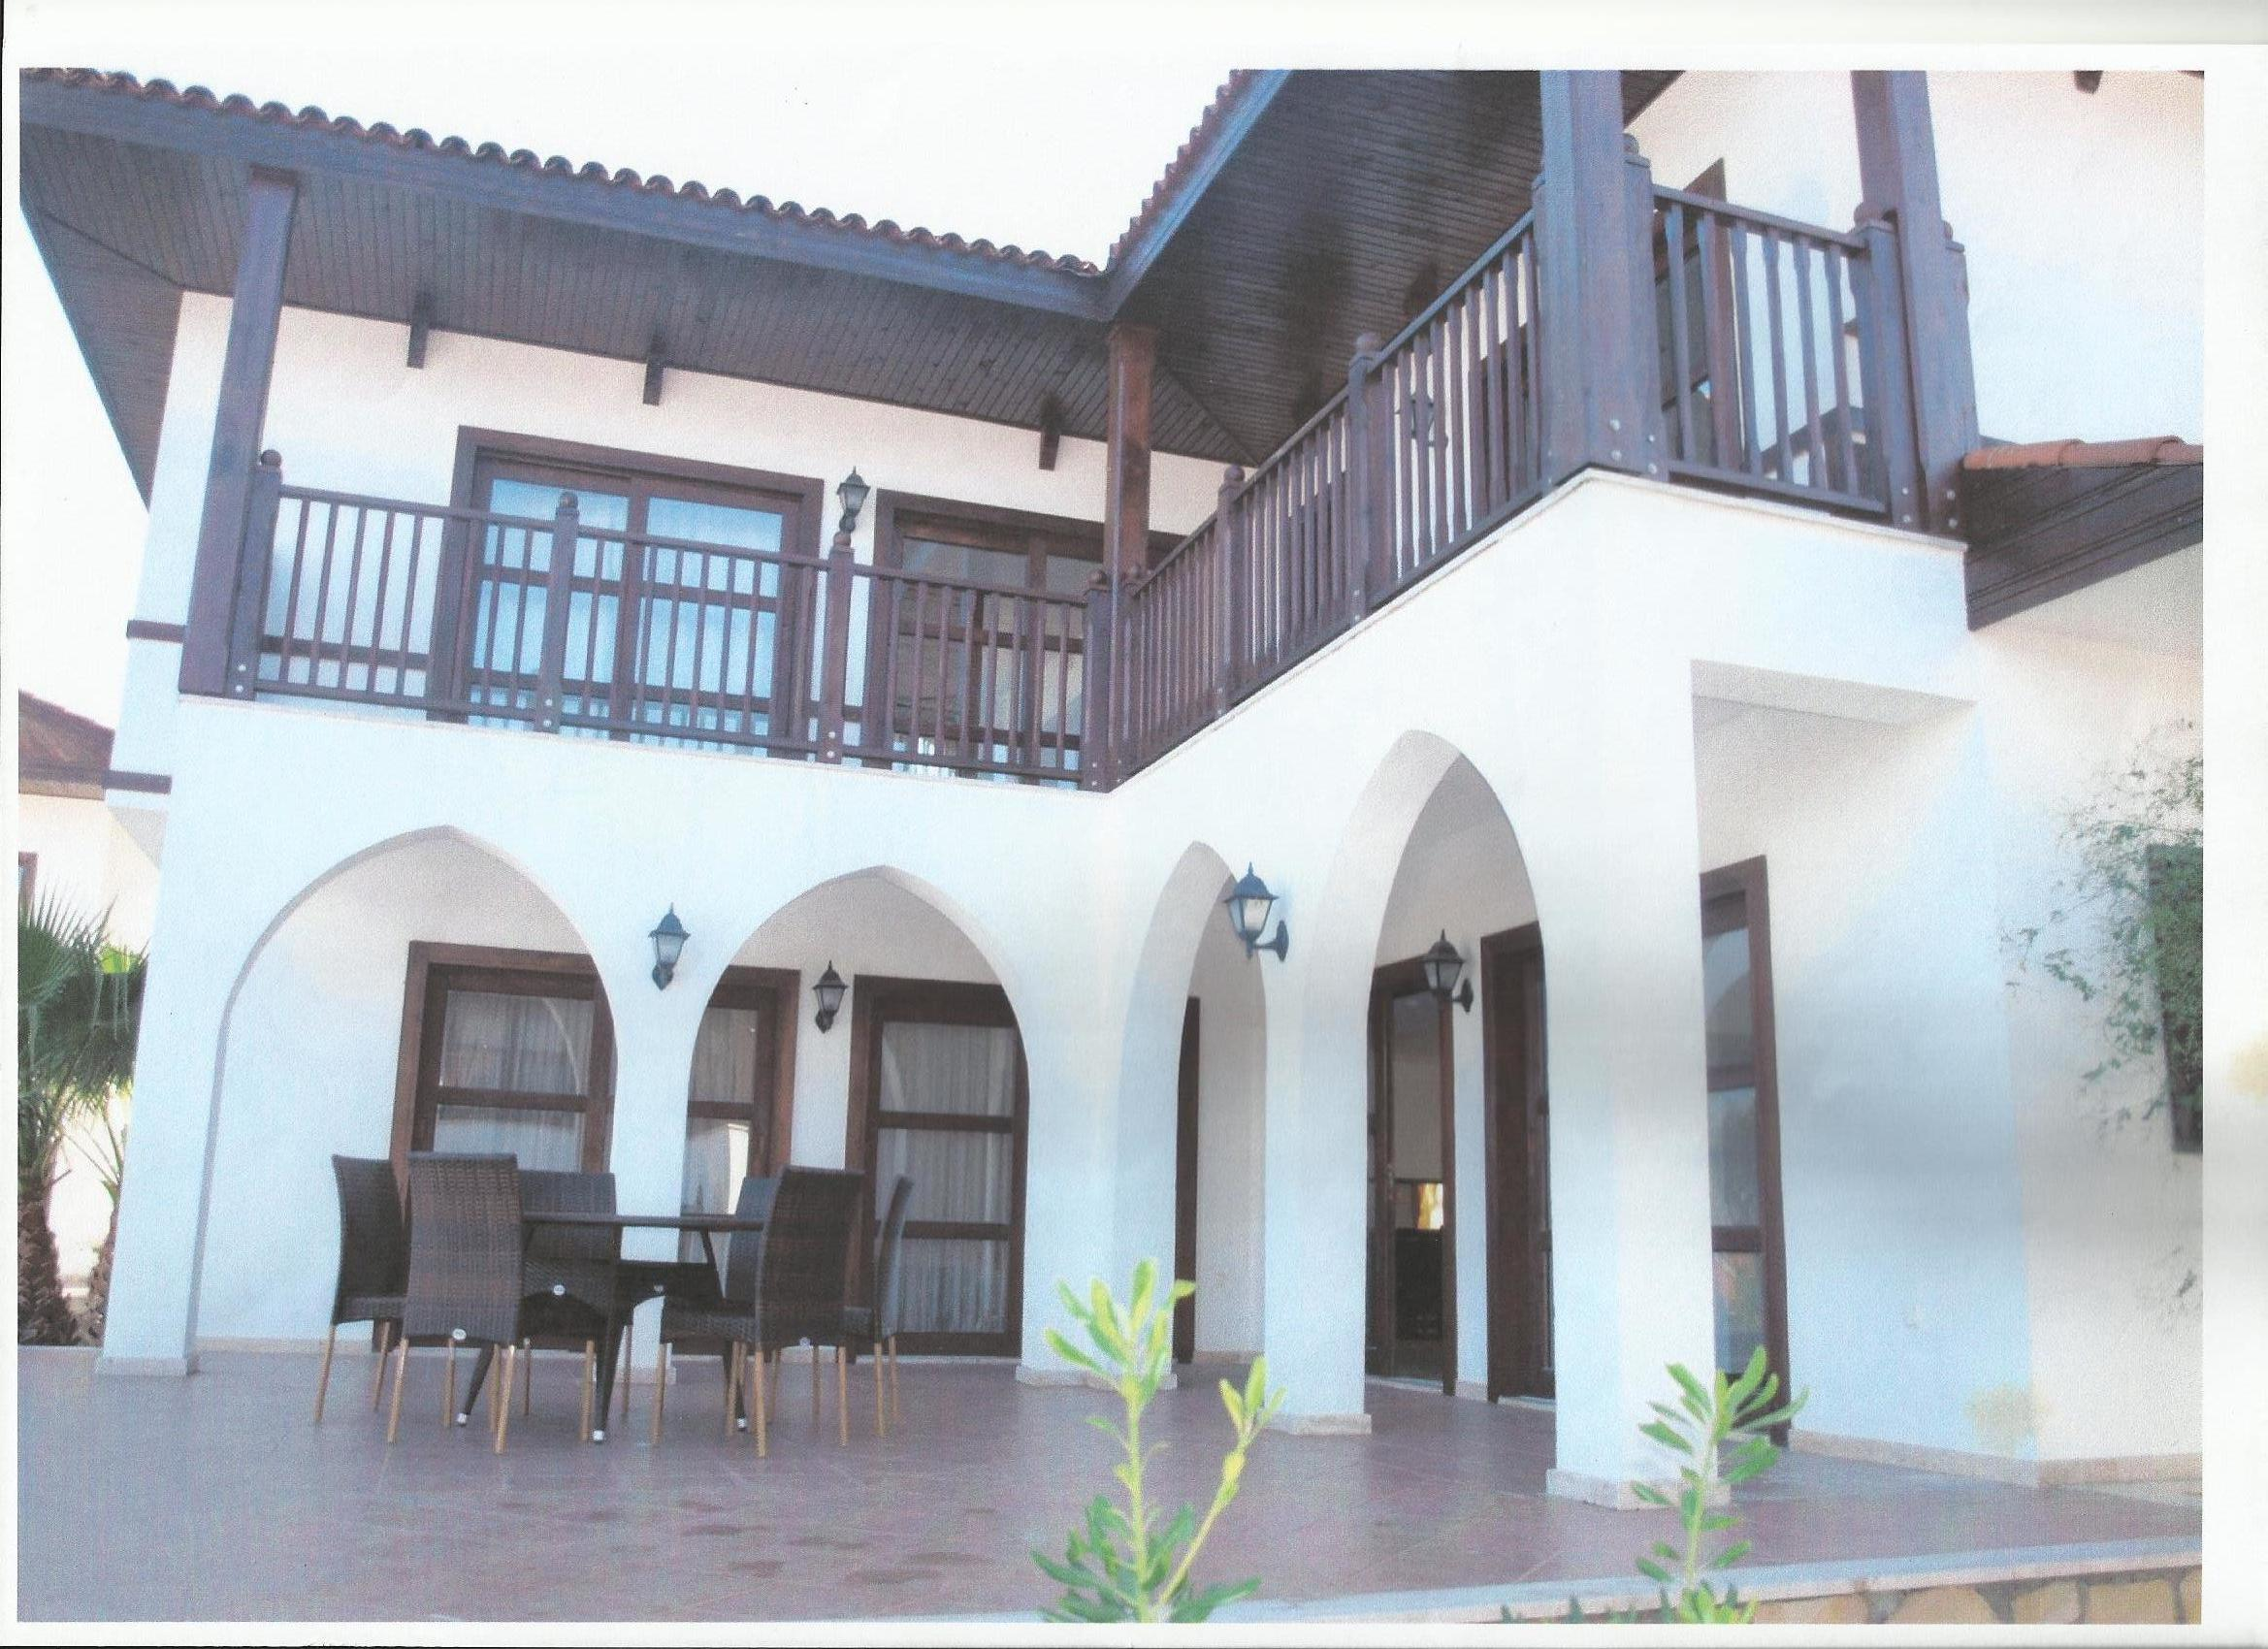 Four Bedroom Villa For Sale in Antalya Turkey